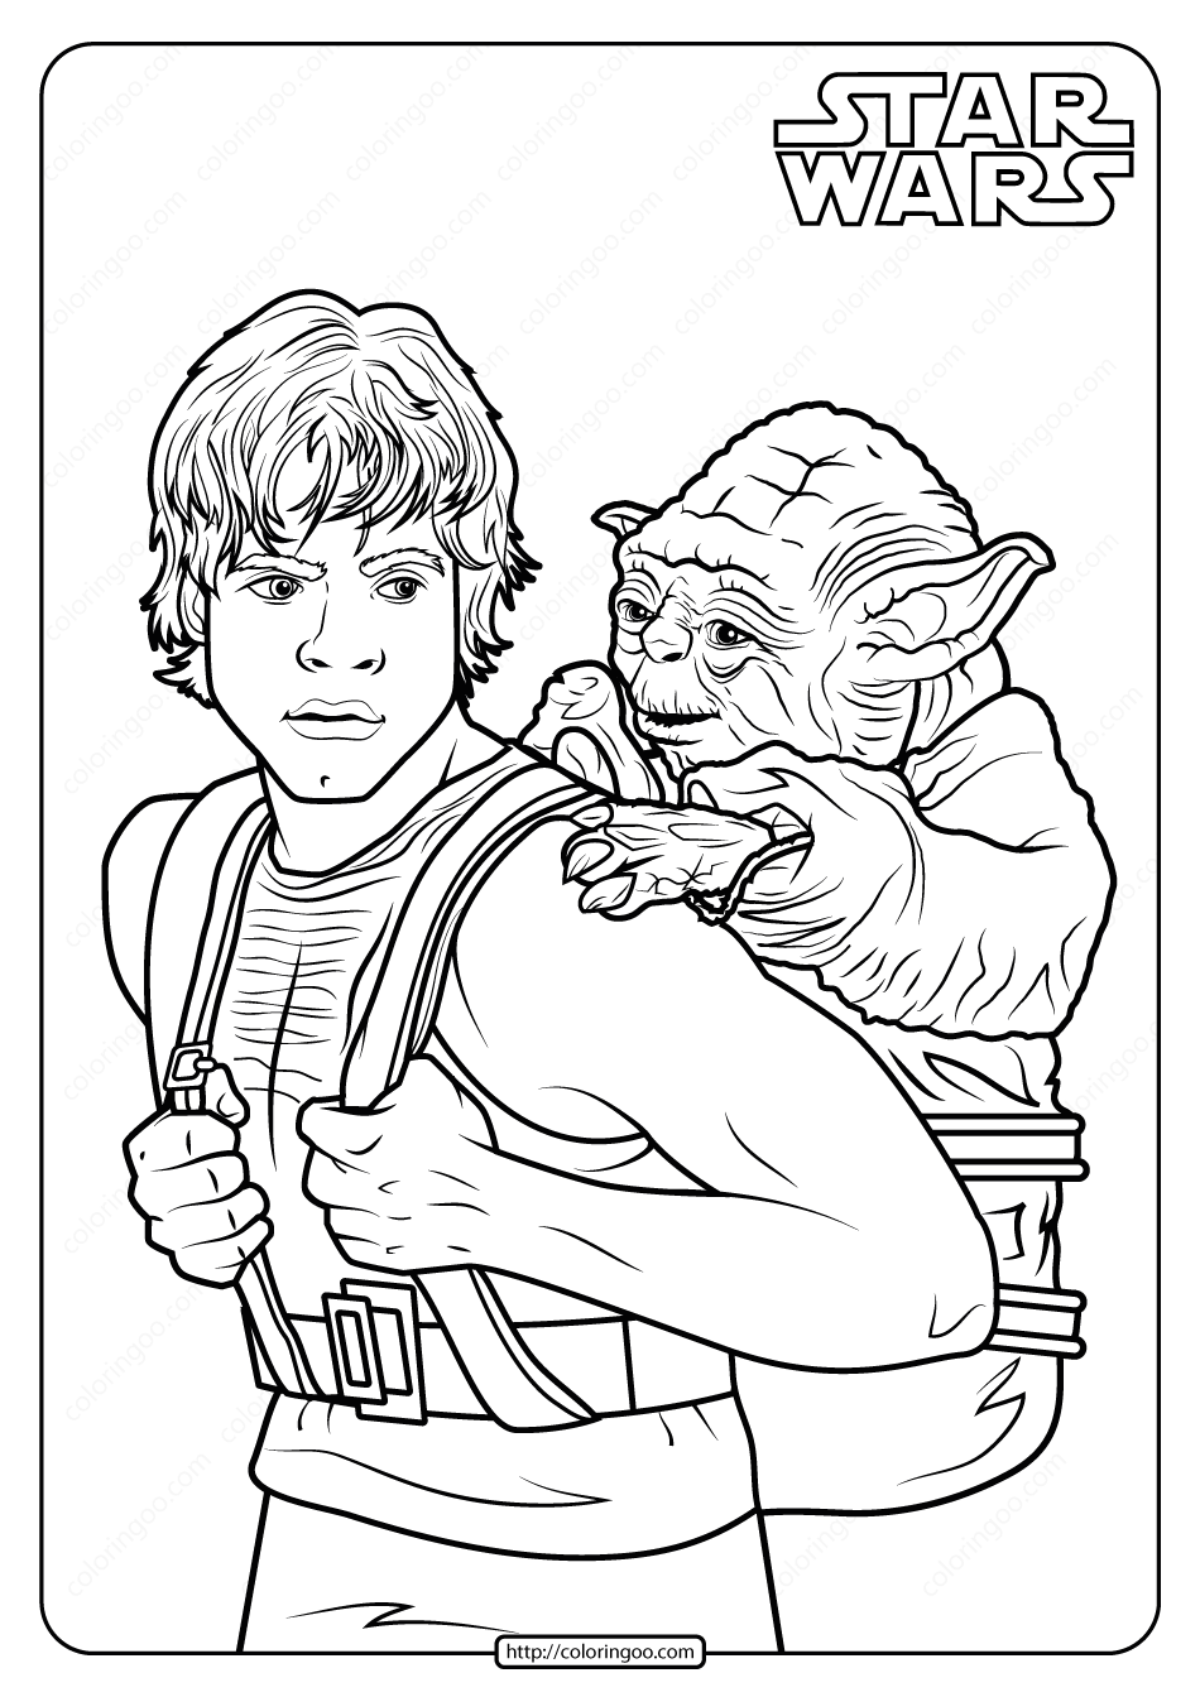 Yoda Coloring Pages - Best Coloring Pages For Kids | 1697x1200